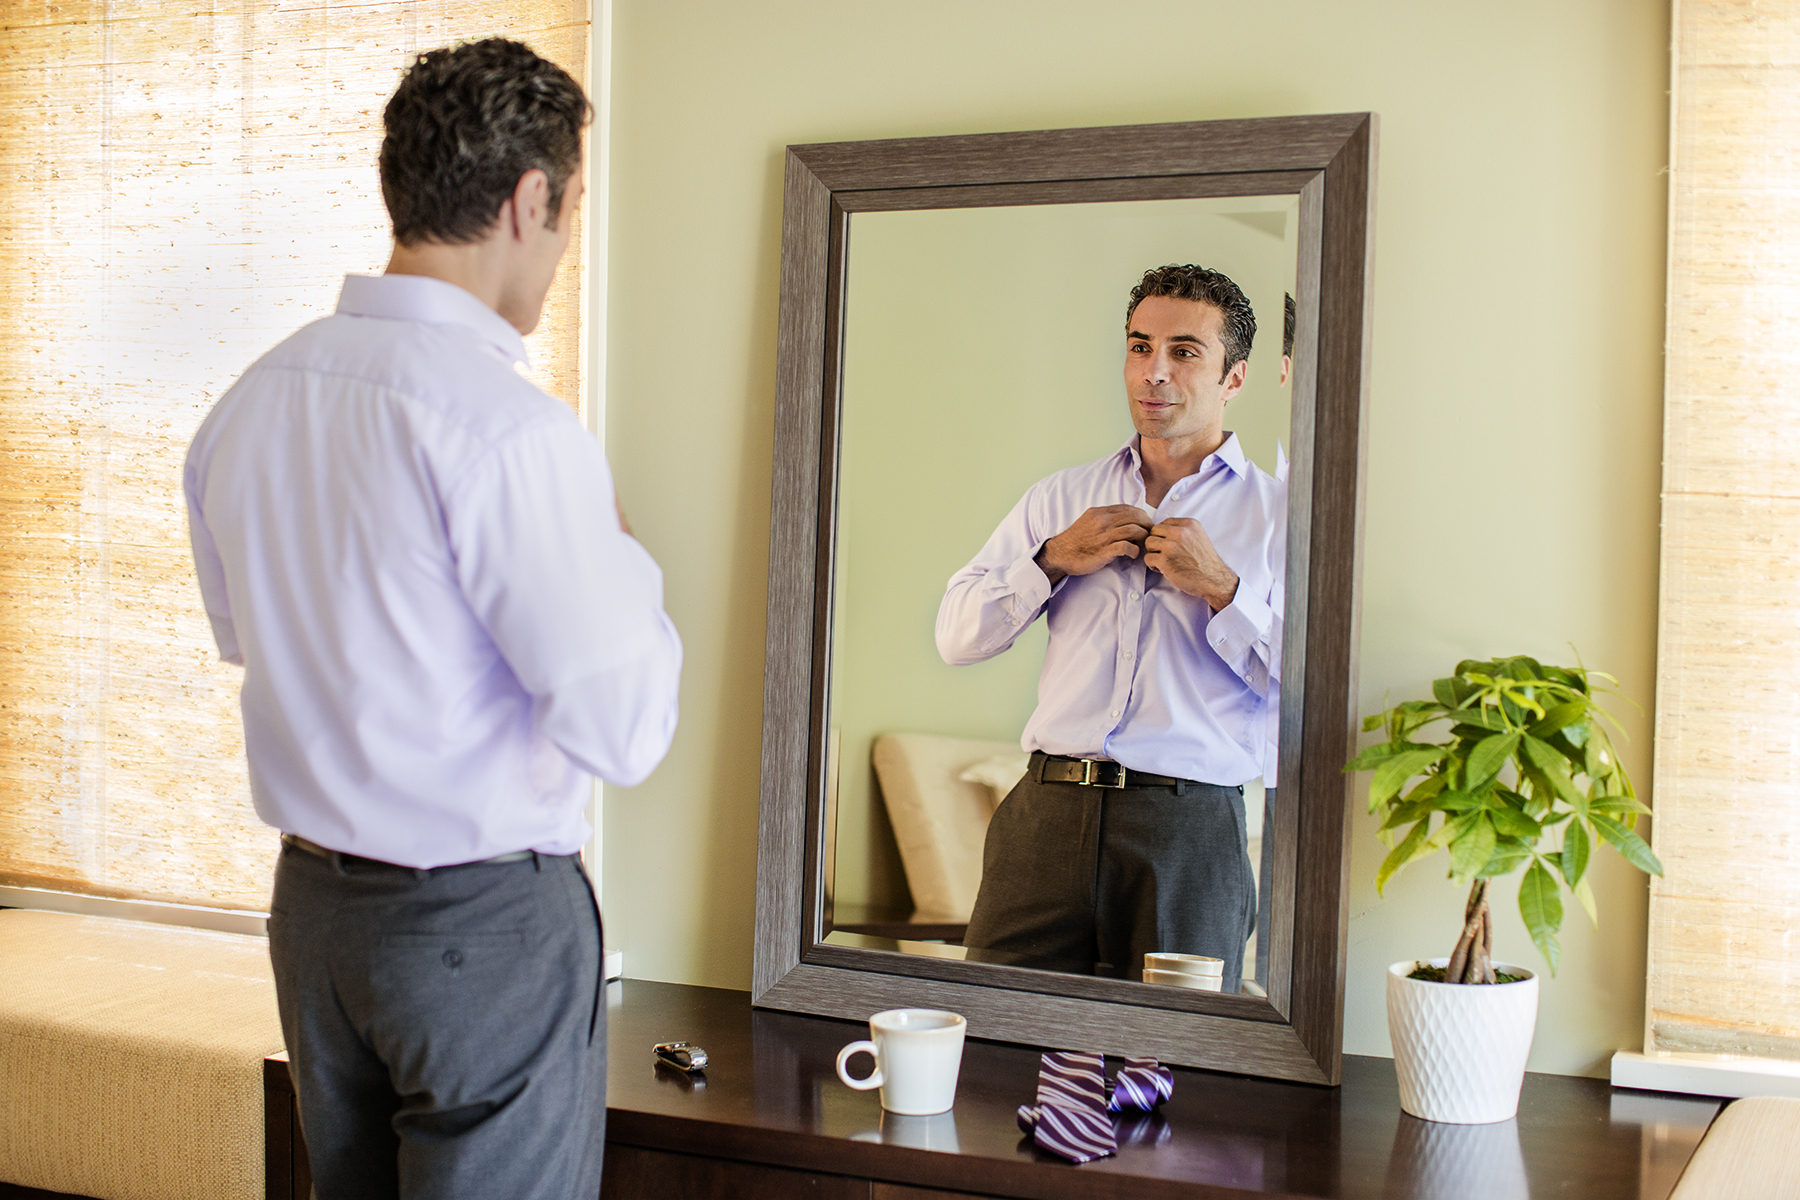 Man-Getting-Ready-63_r1.jpg